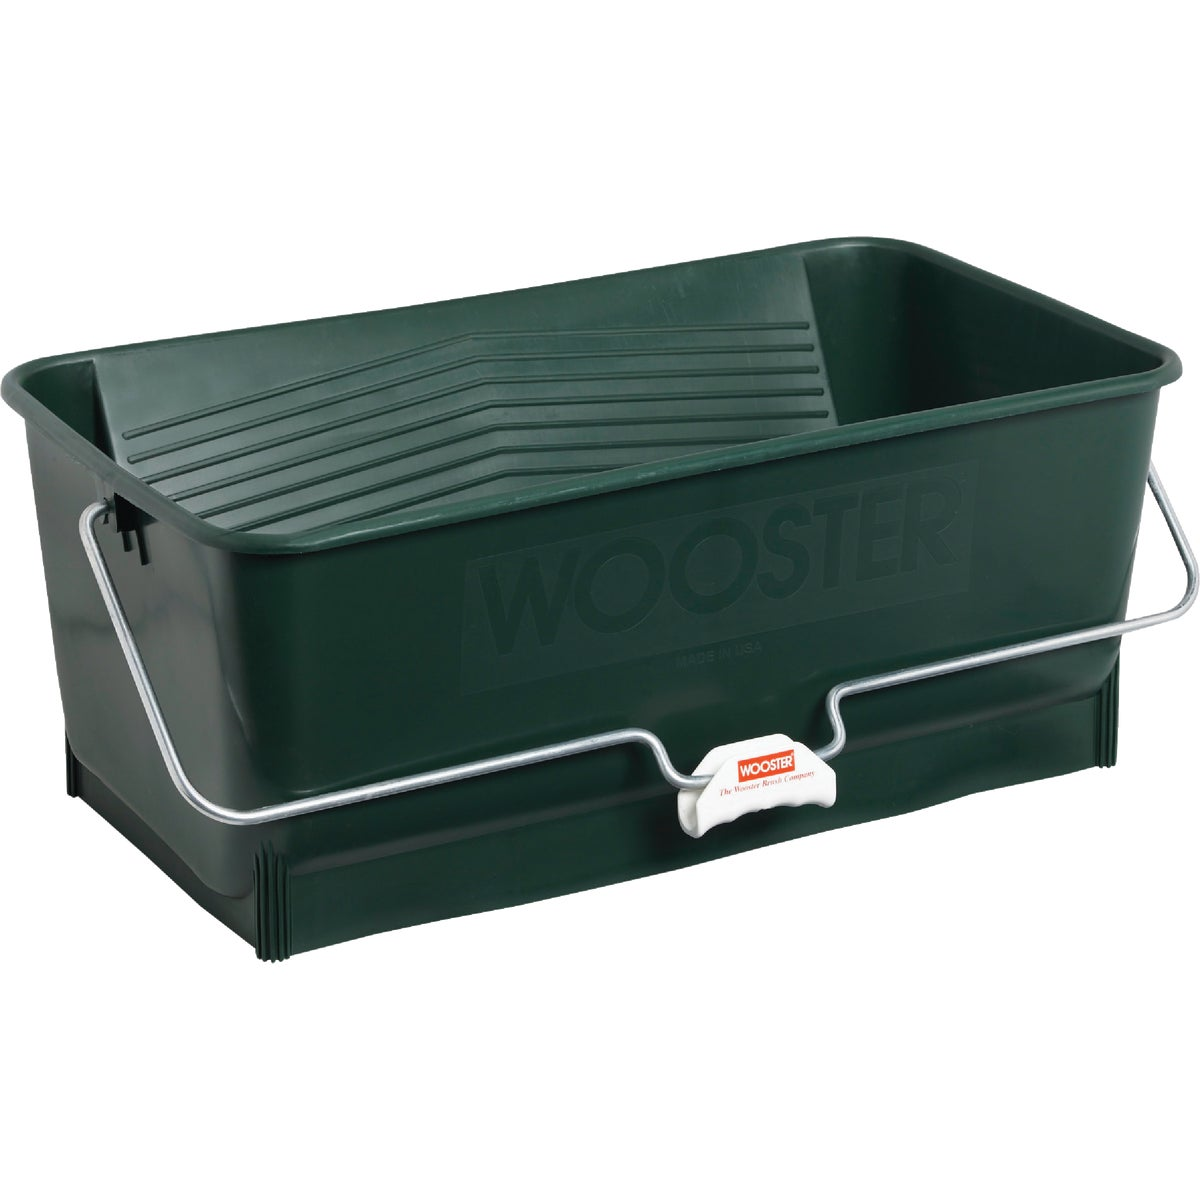 WIDE PAINT BUCKET - 8614 by Wooster Brush Co